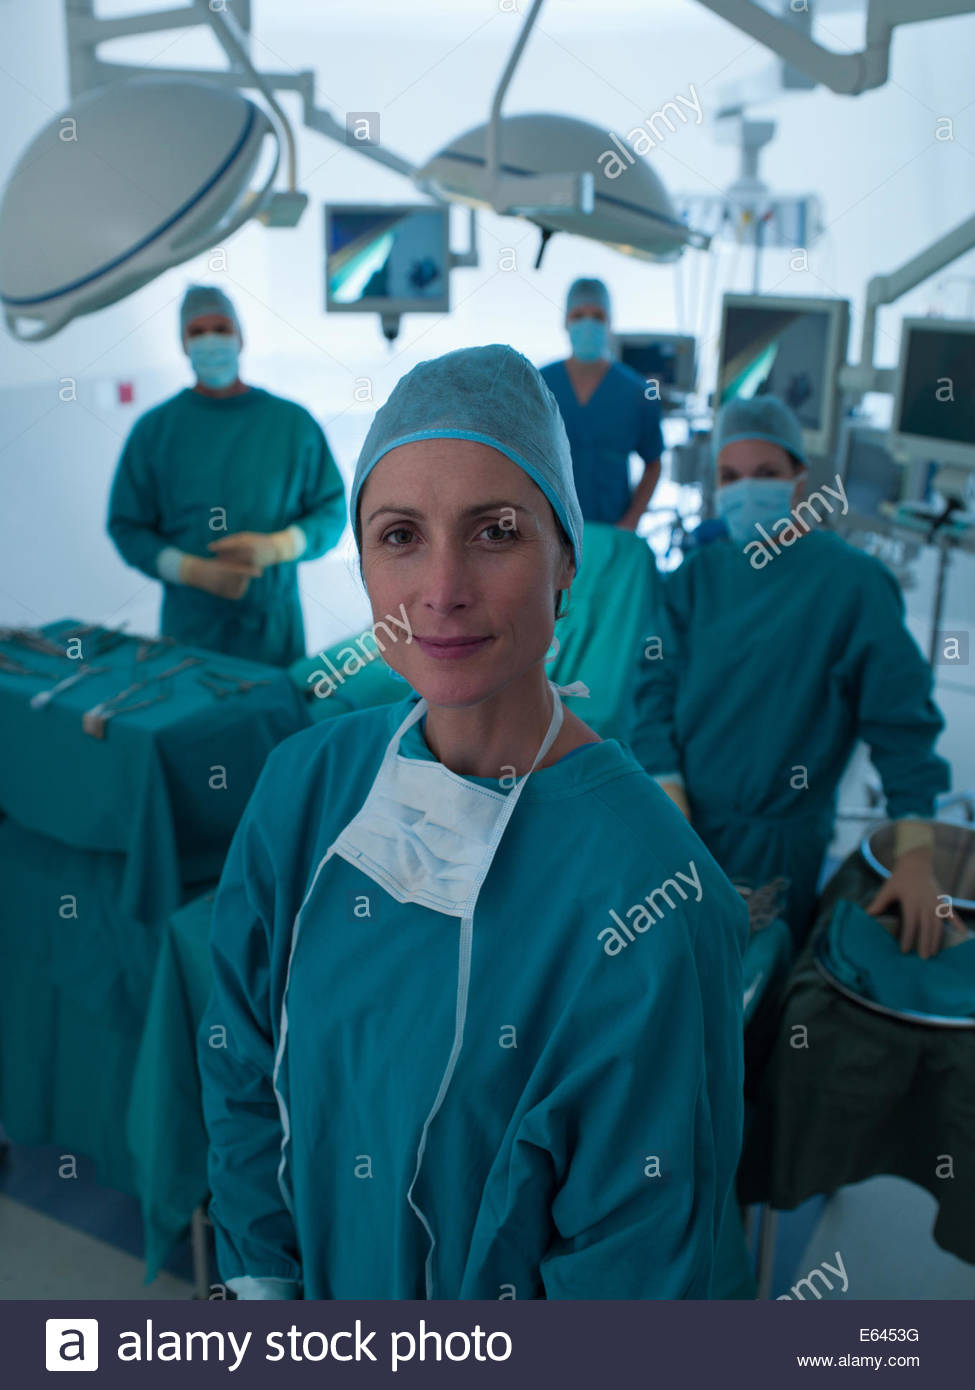 Surgeons standing in operating room - Stock Image